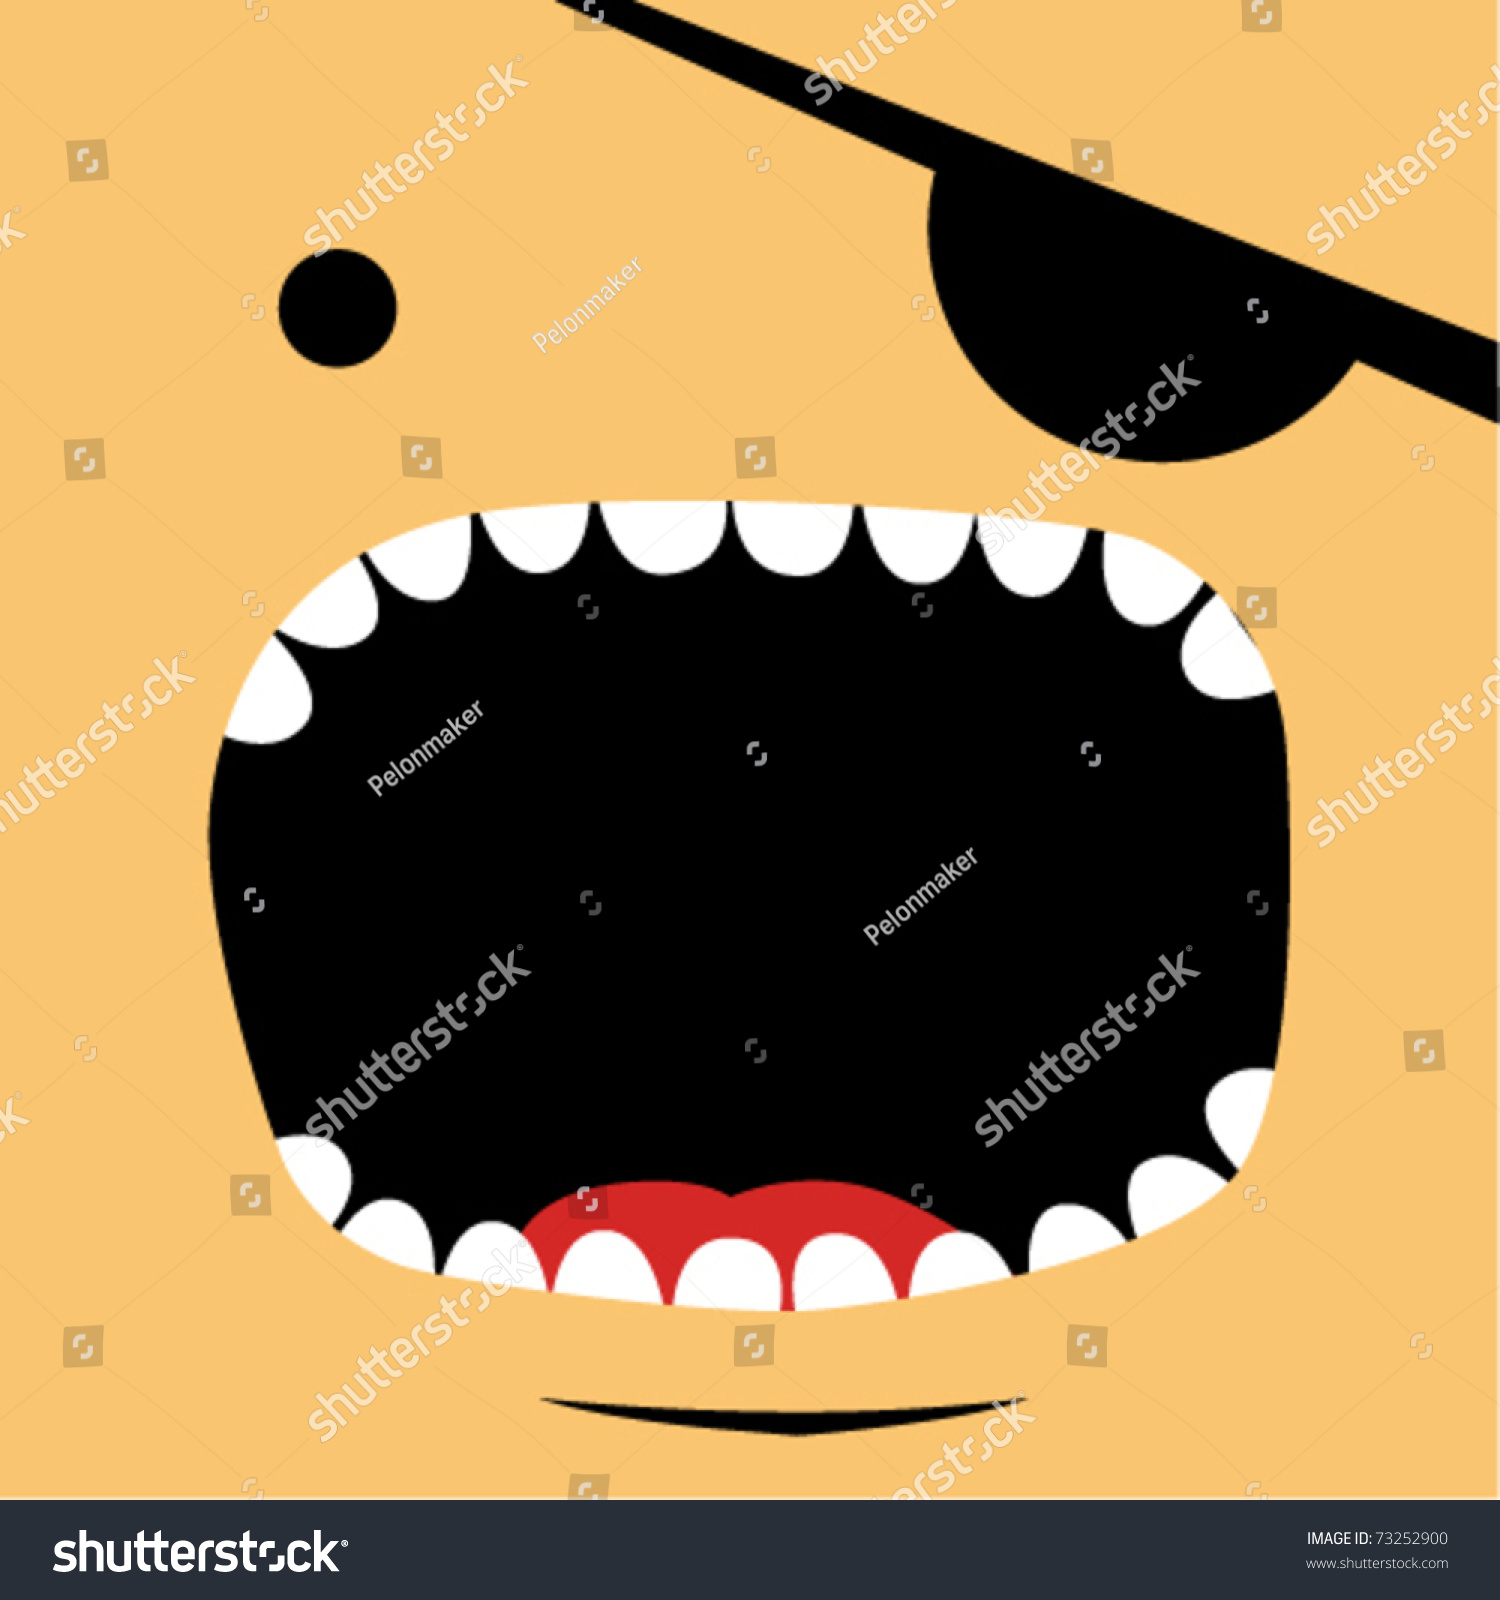 Pirate face vector - photo#19